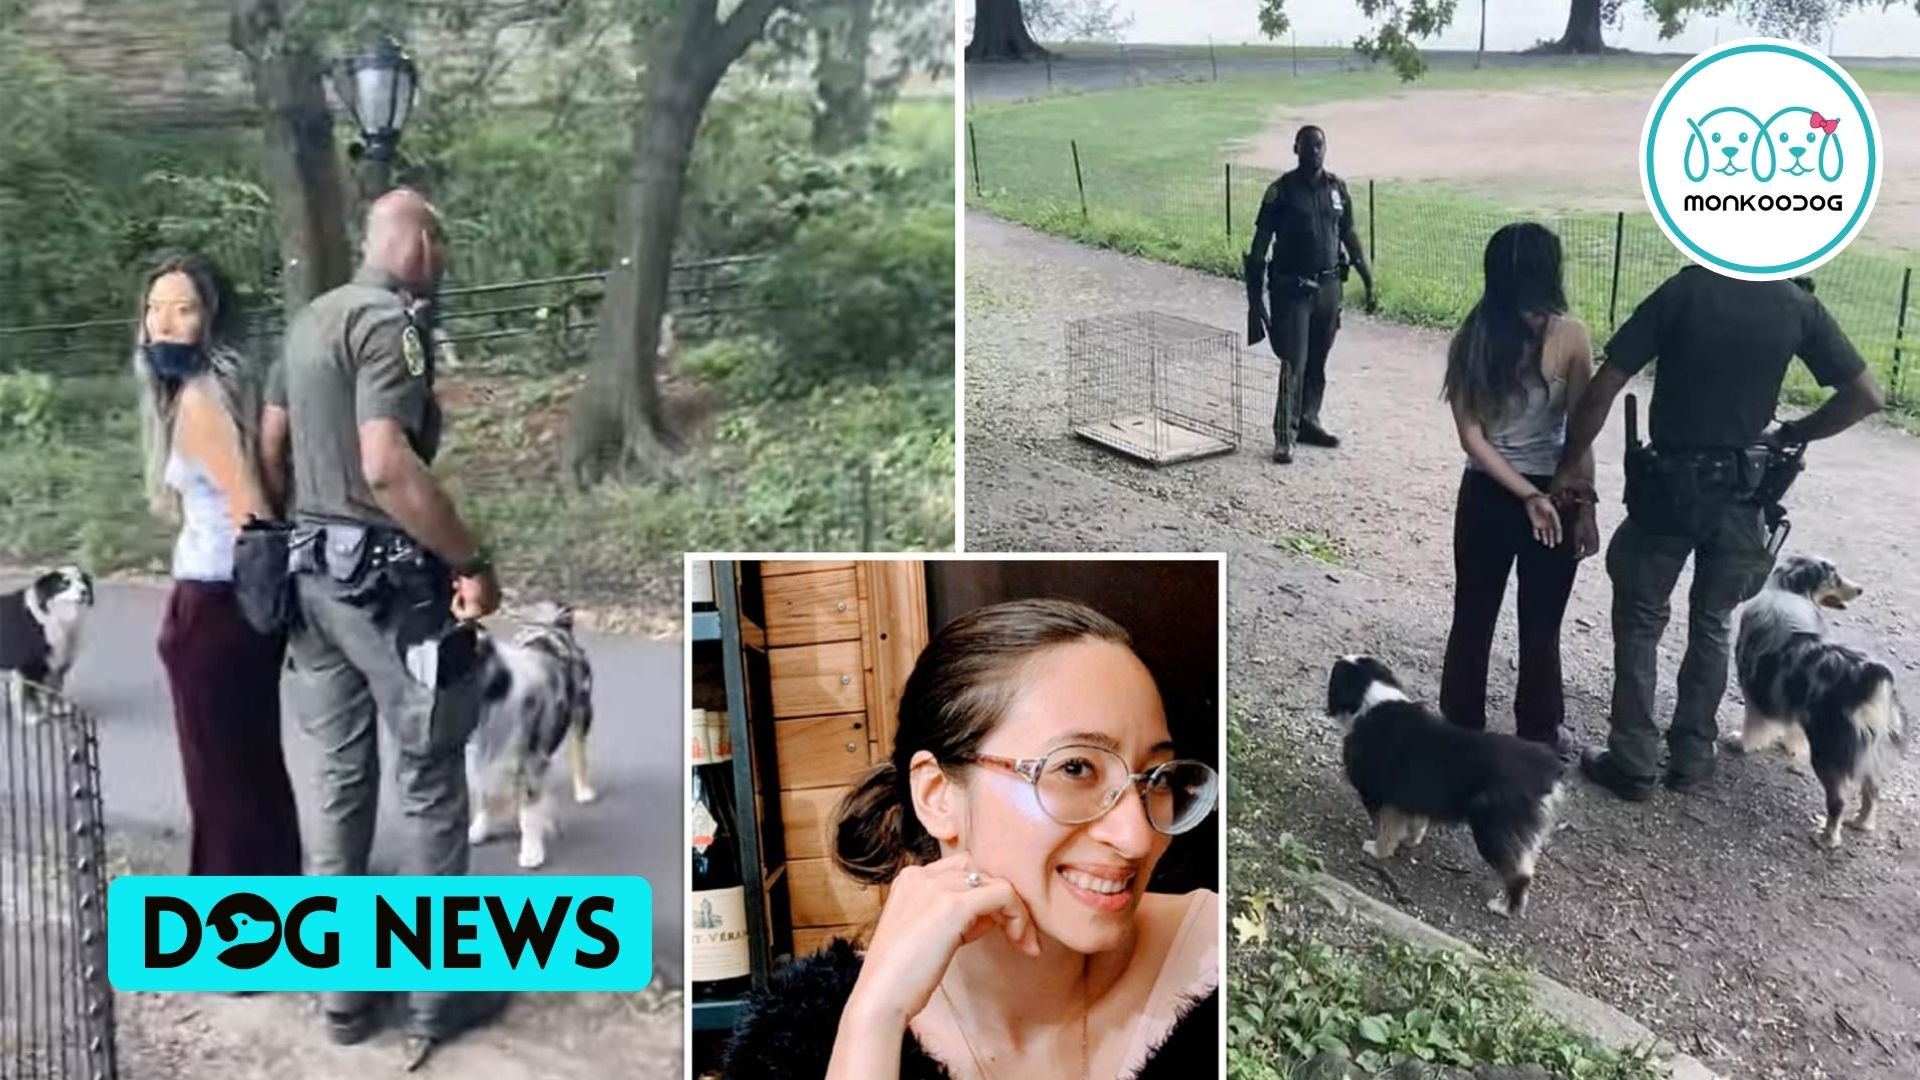 Woman booked in NYC for walking her dogs without a leash.